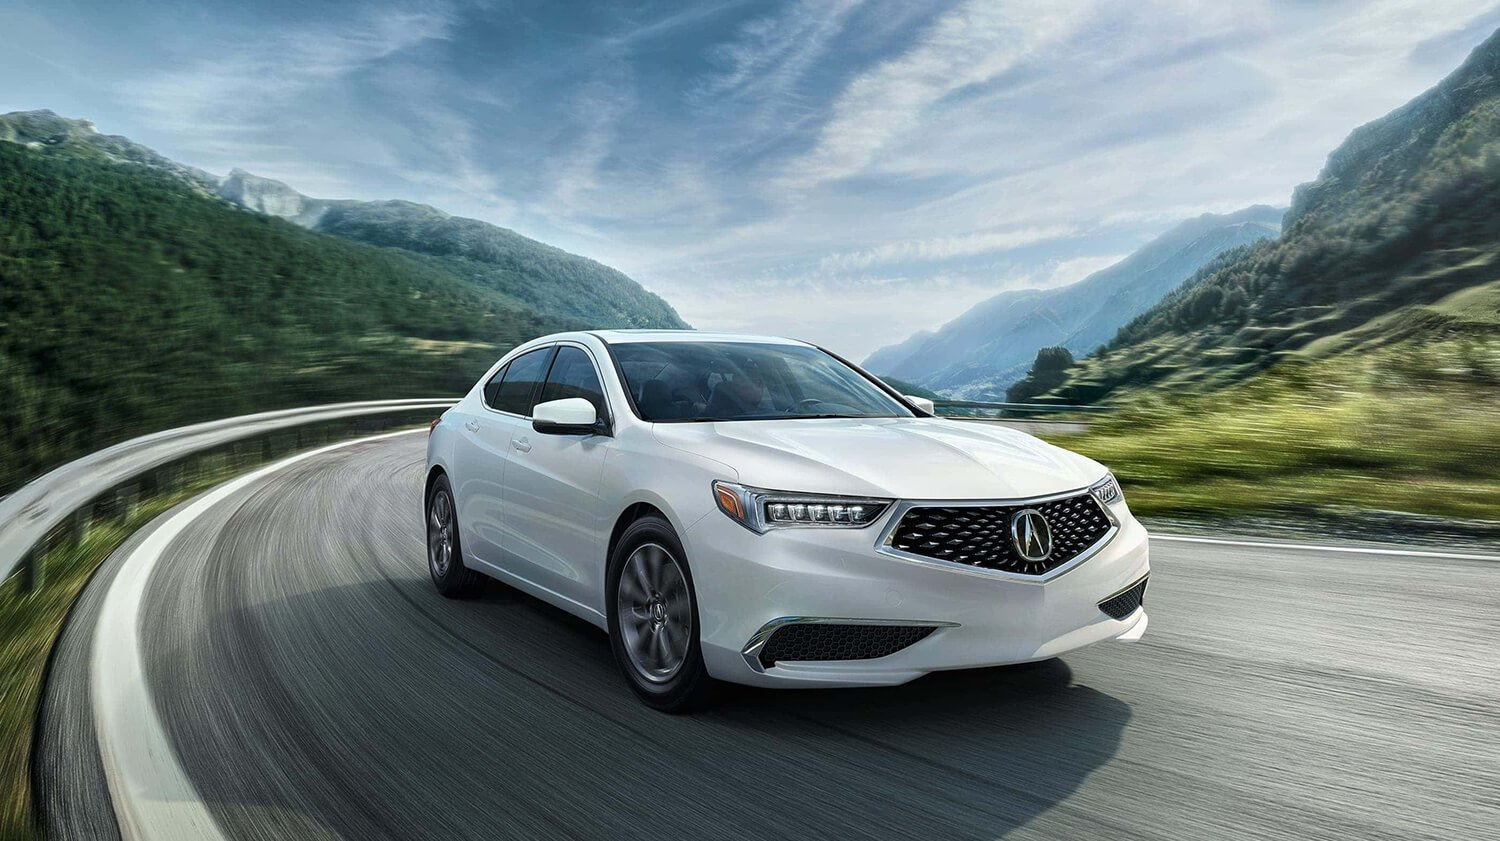 2018 Acura TLX Exterior Front Passenger Side White